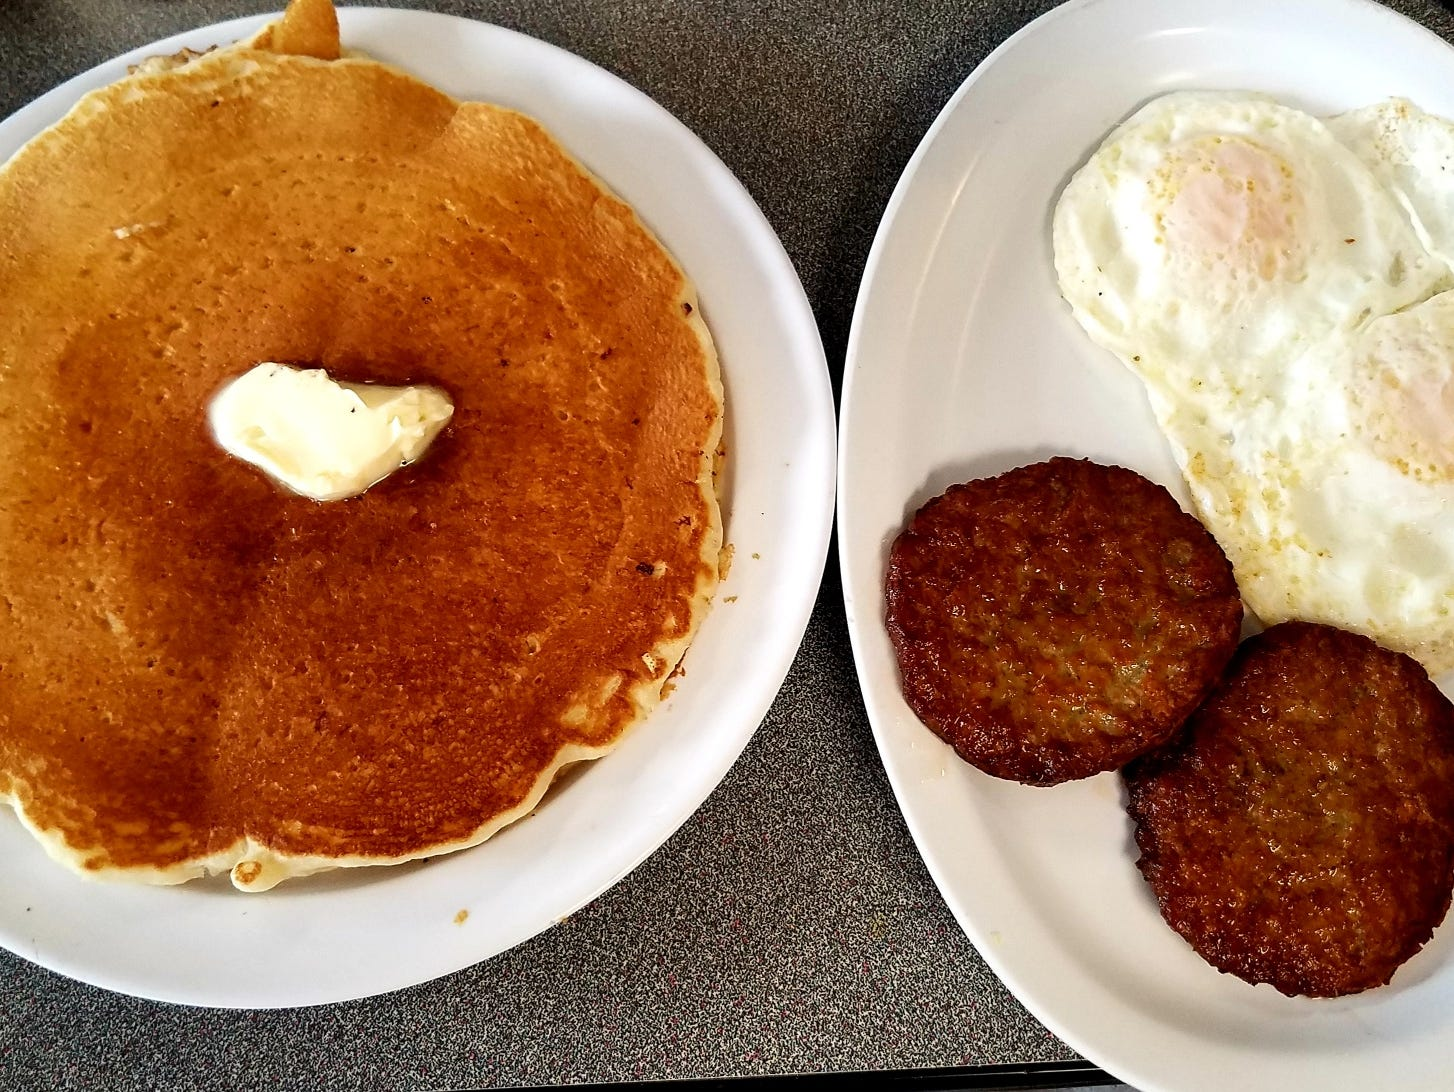 The Big Boy Platter comes with 2 pancakes or French toast, 2 eggs your way, and choice of meat.